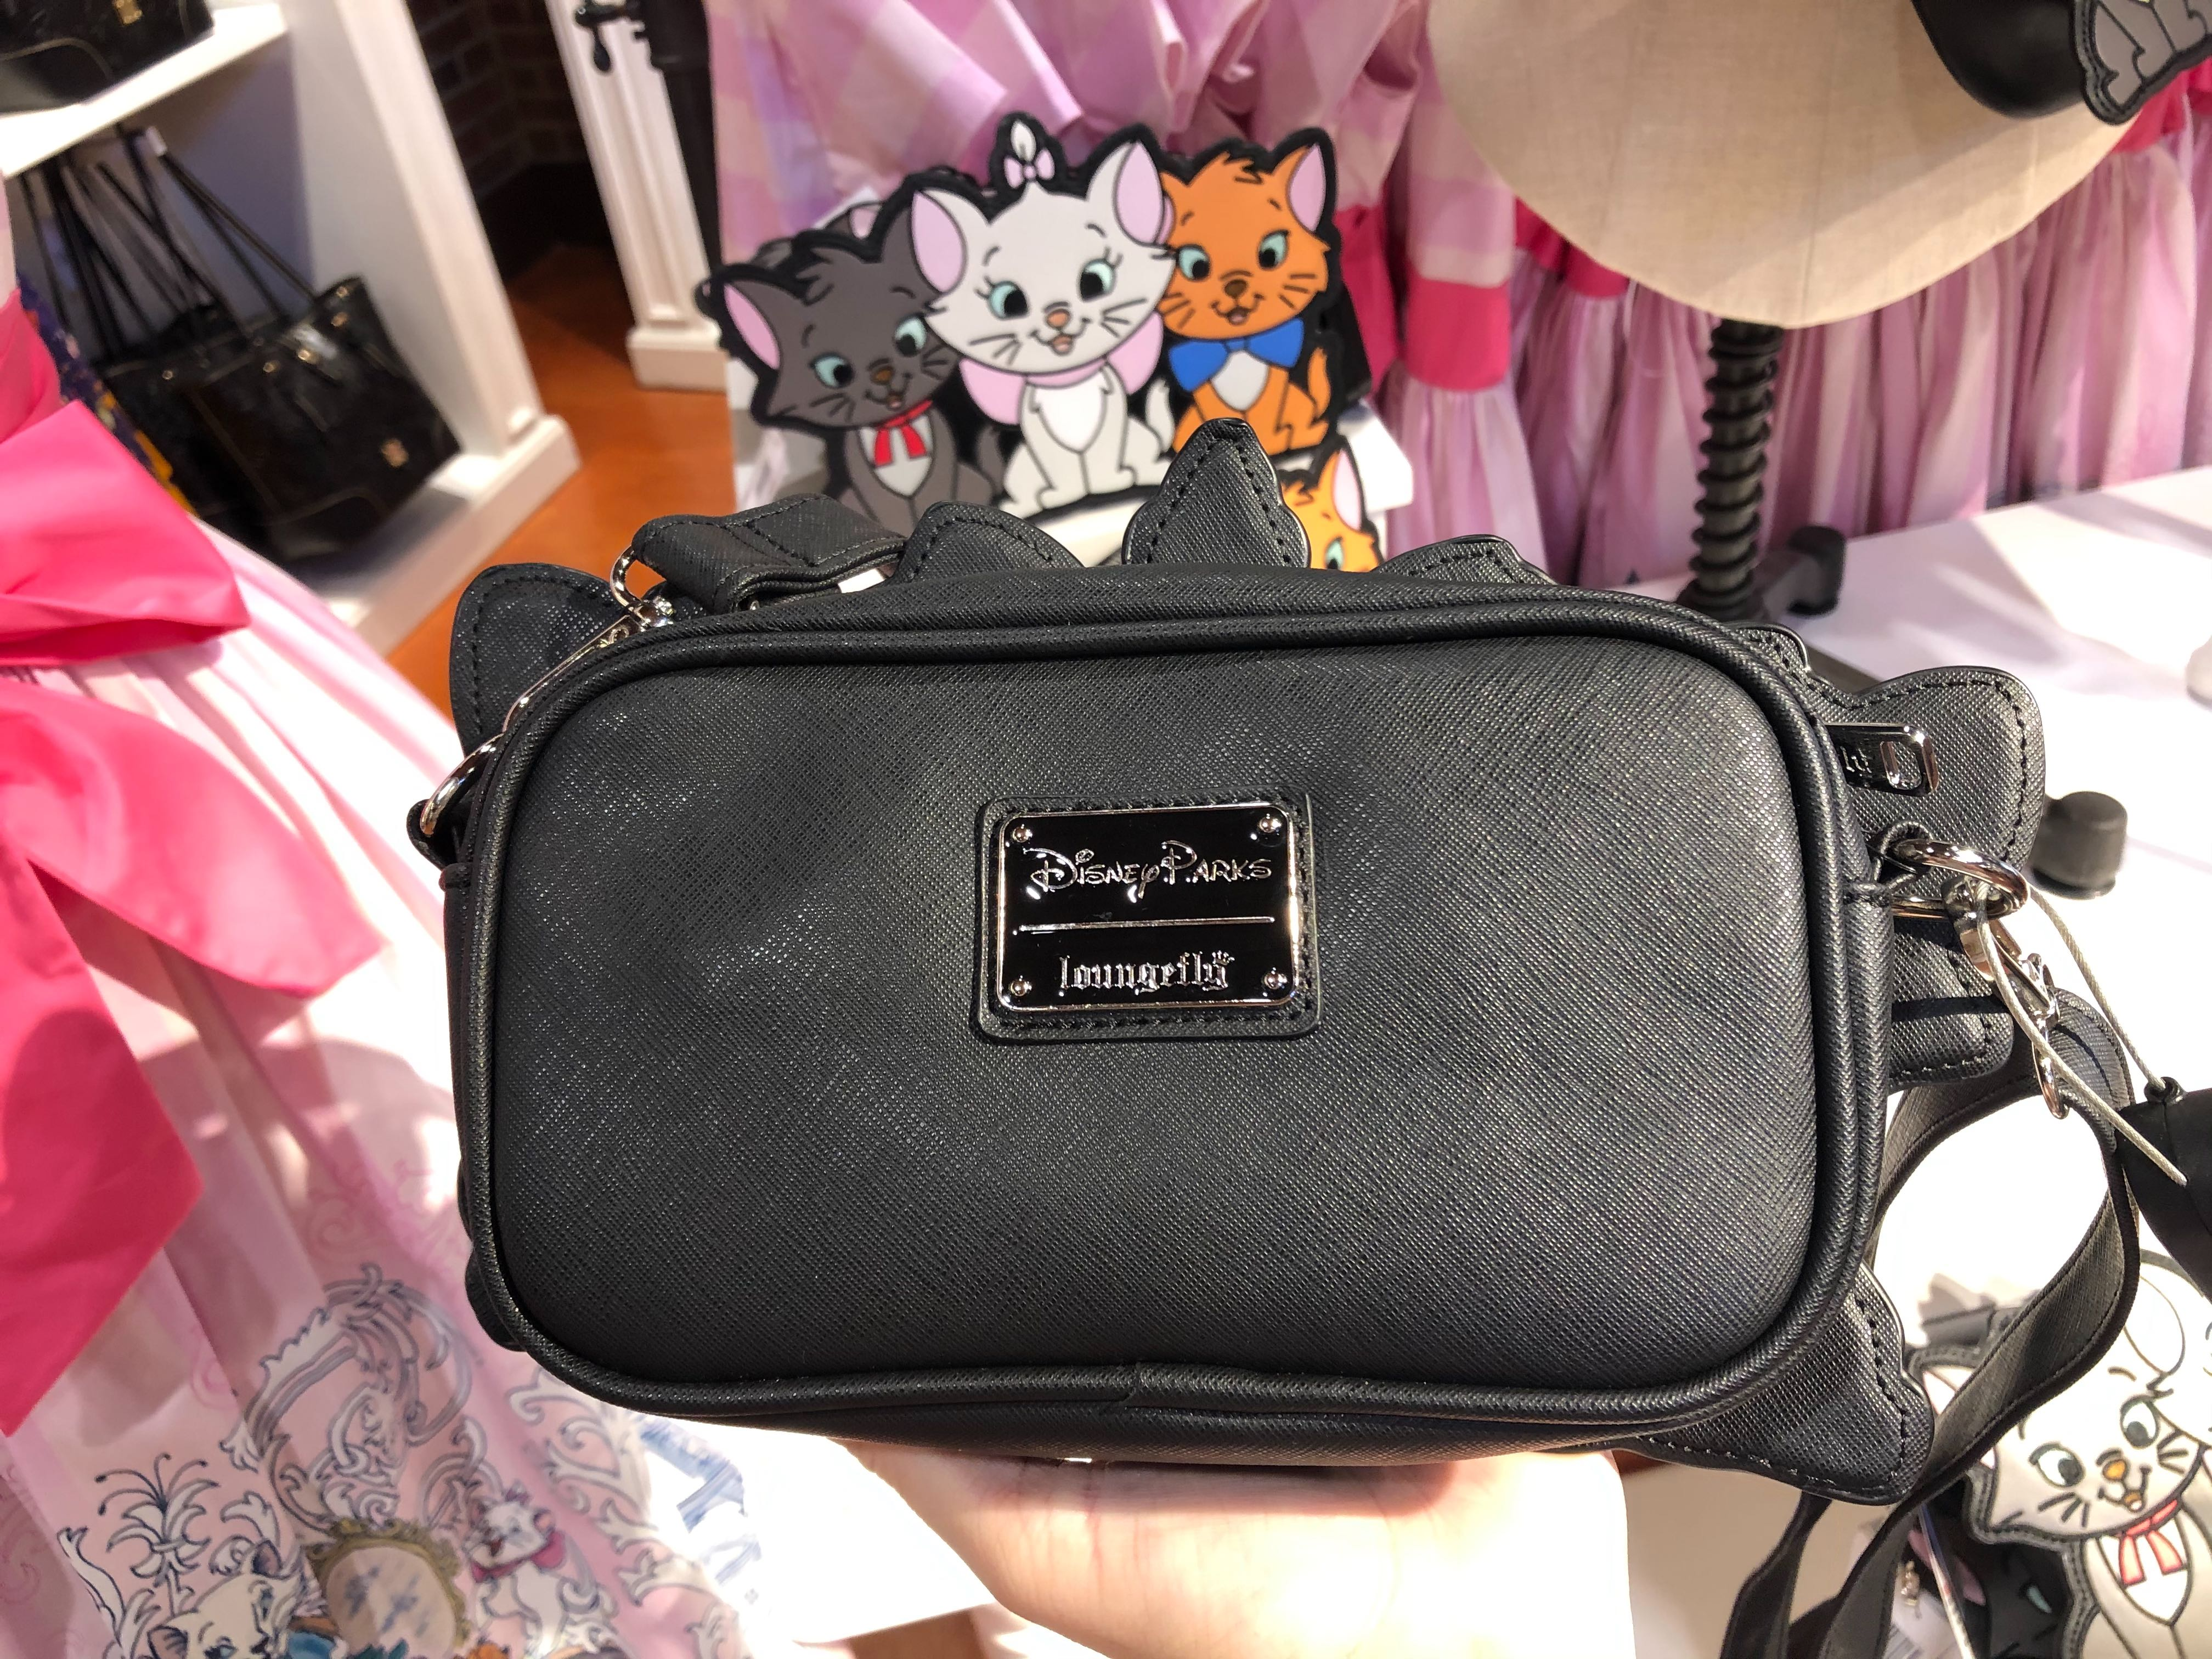 The Aristocats Loungefly Bag